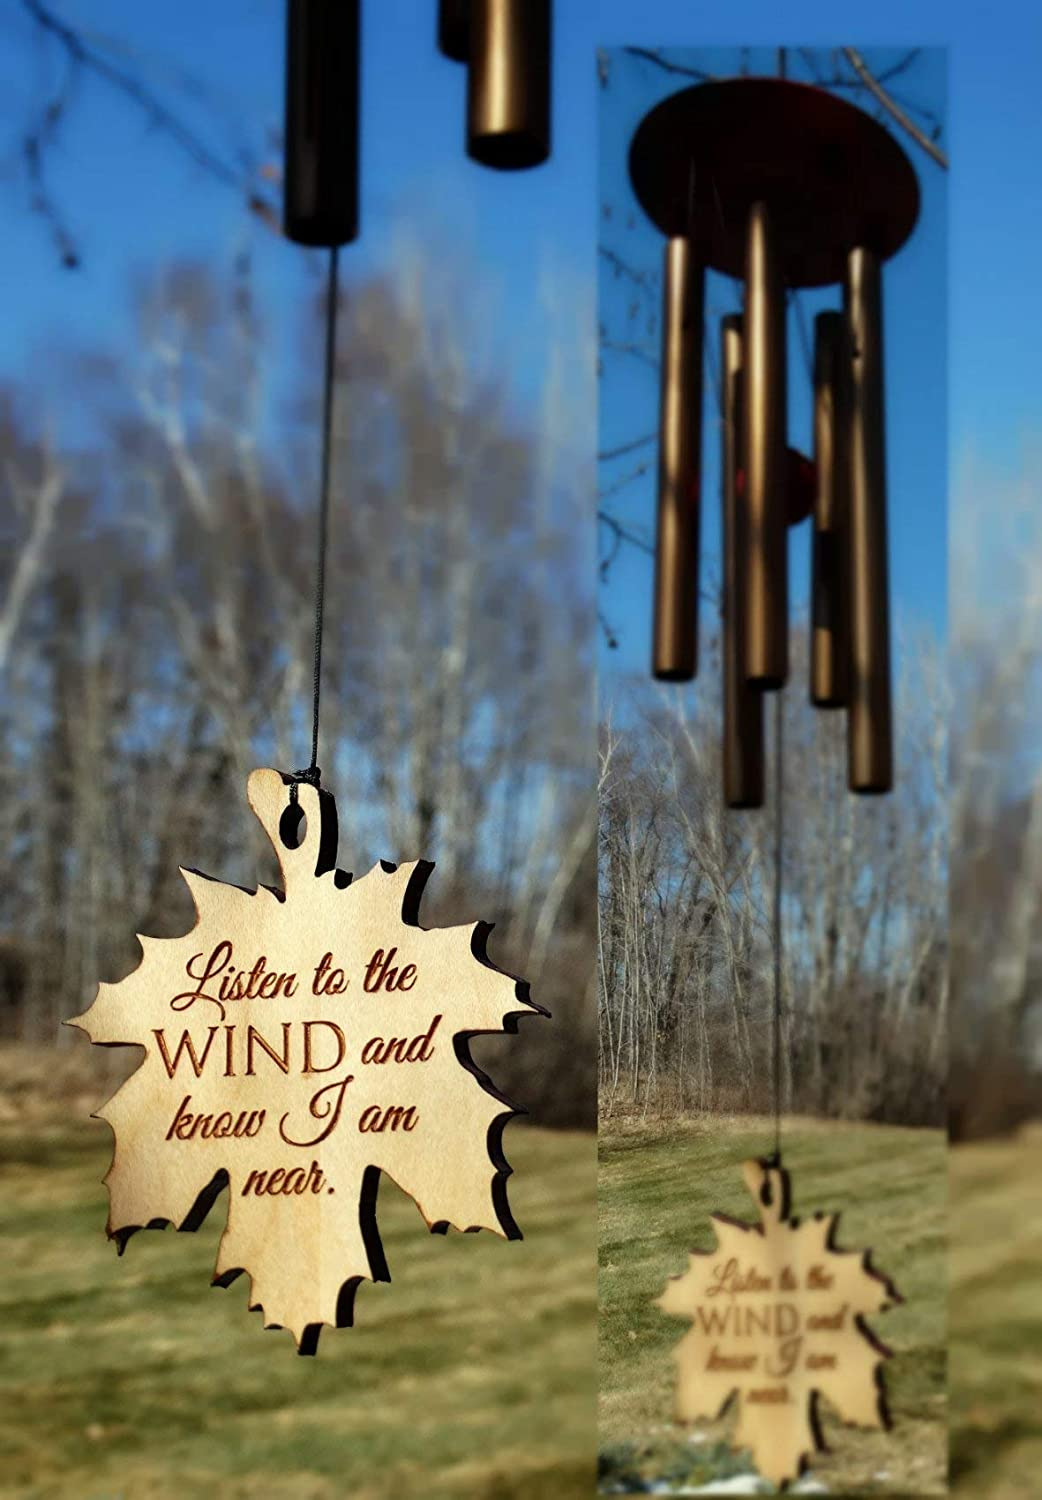 Listen to the WIND Memorial Wind Chime PRIME rush shipping for funeral loss in memory of Loved One Copper Wind Chime for Memorial Garden or Porch Heaven day remembering stillborn baby miscarriage